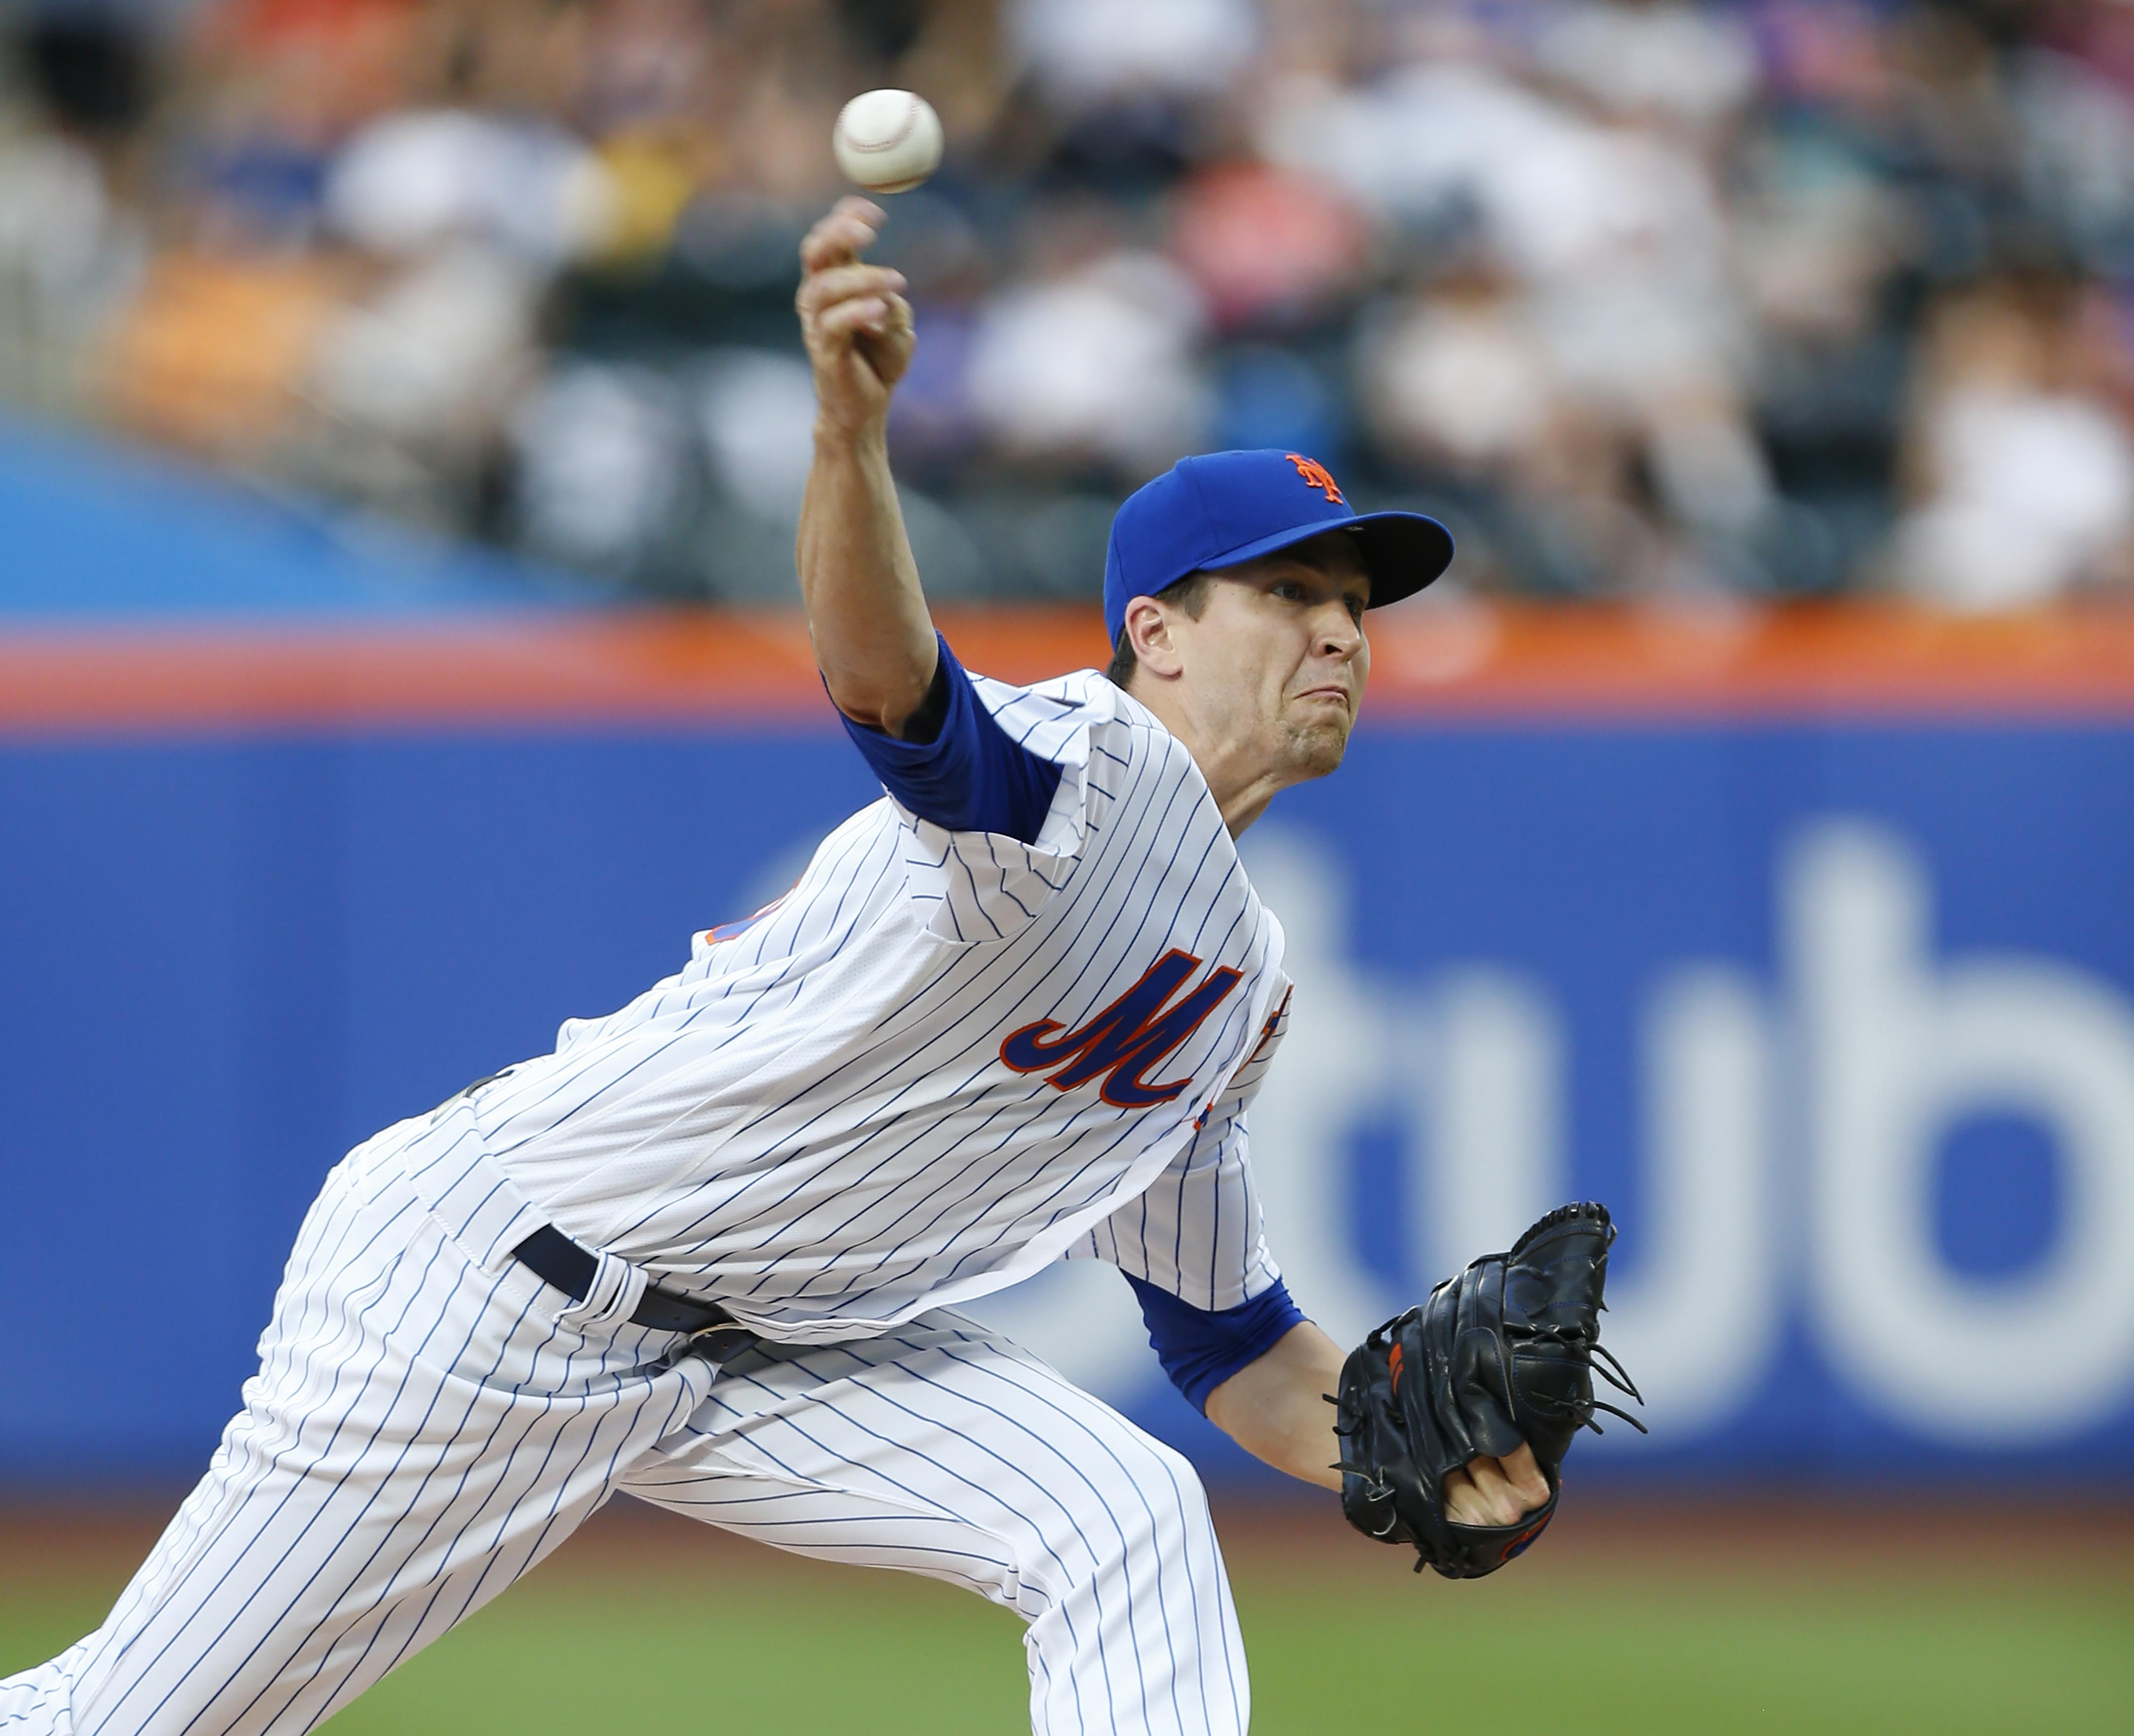 As Expected, Jacob deGrom is New York Mets' Lone All Star